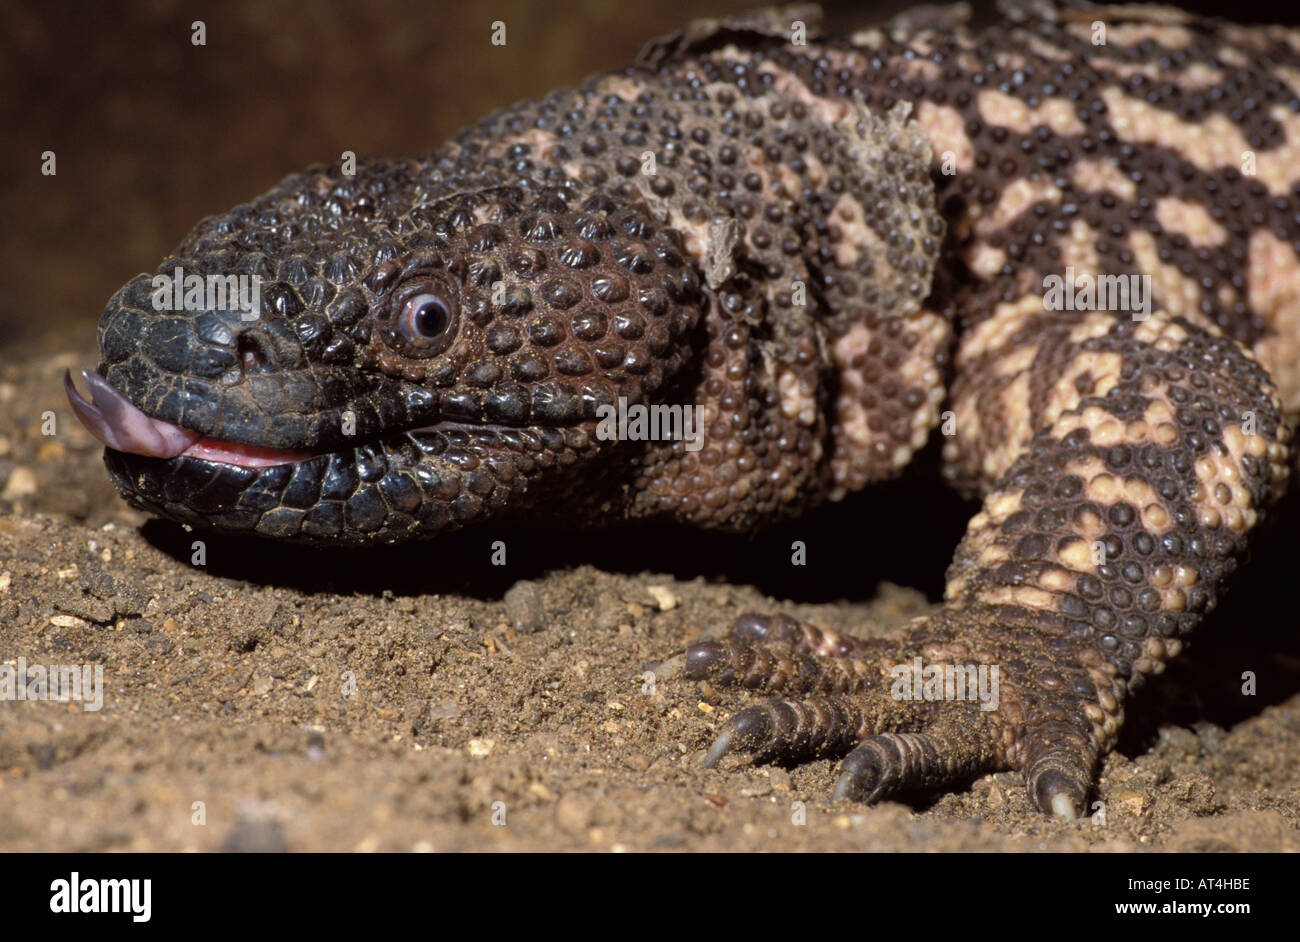 Gila Monster One Of 2 Poisonous Lizards In World USA